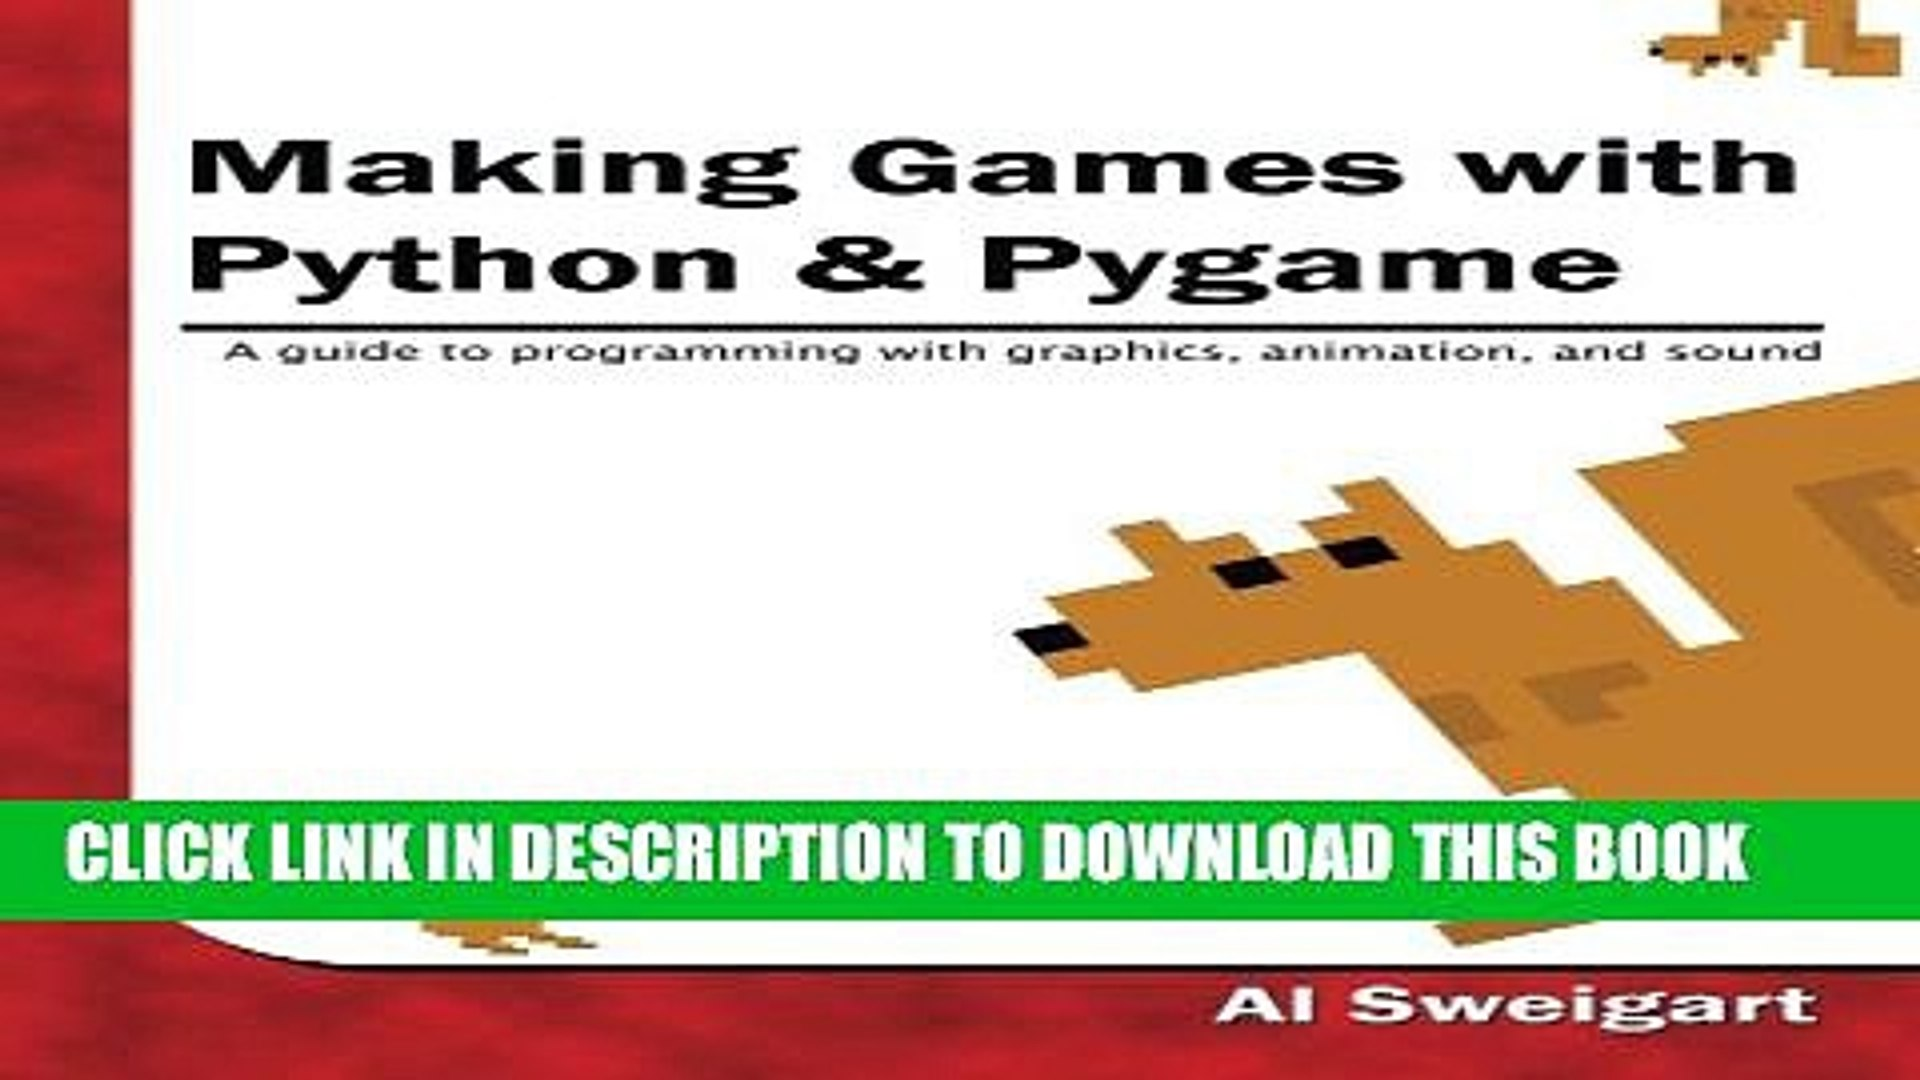 Making Games With Python